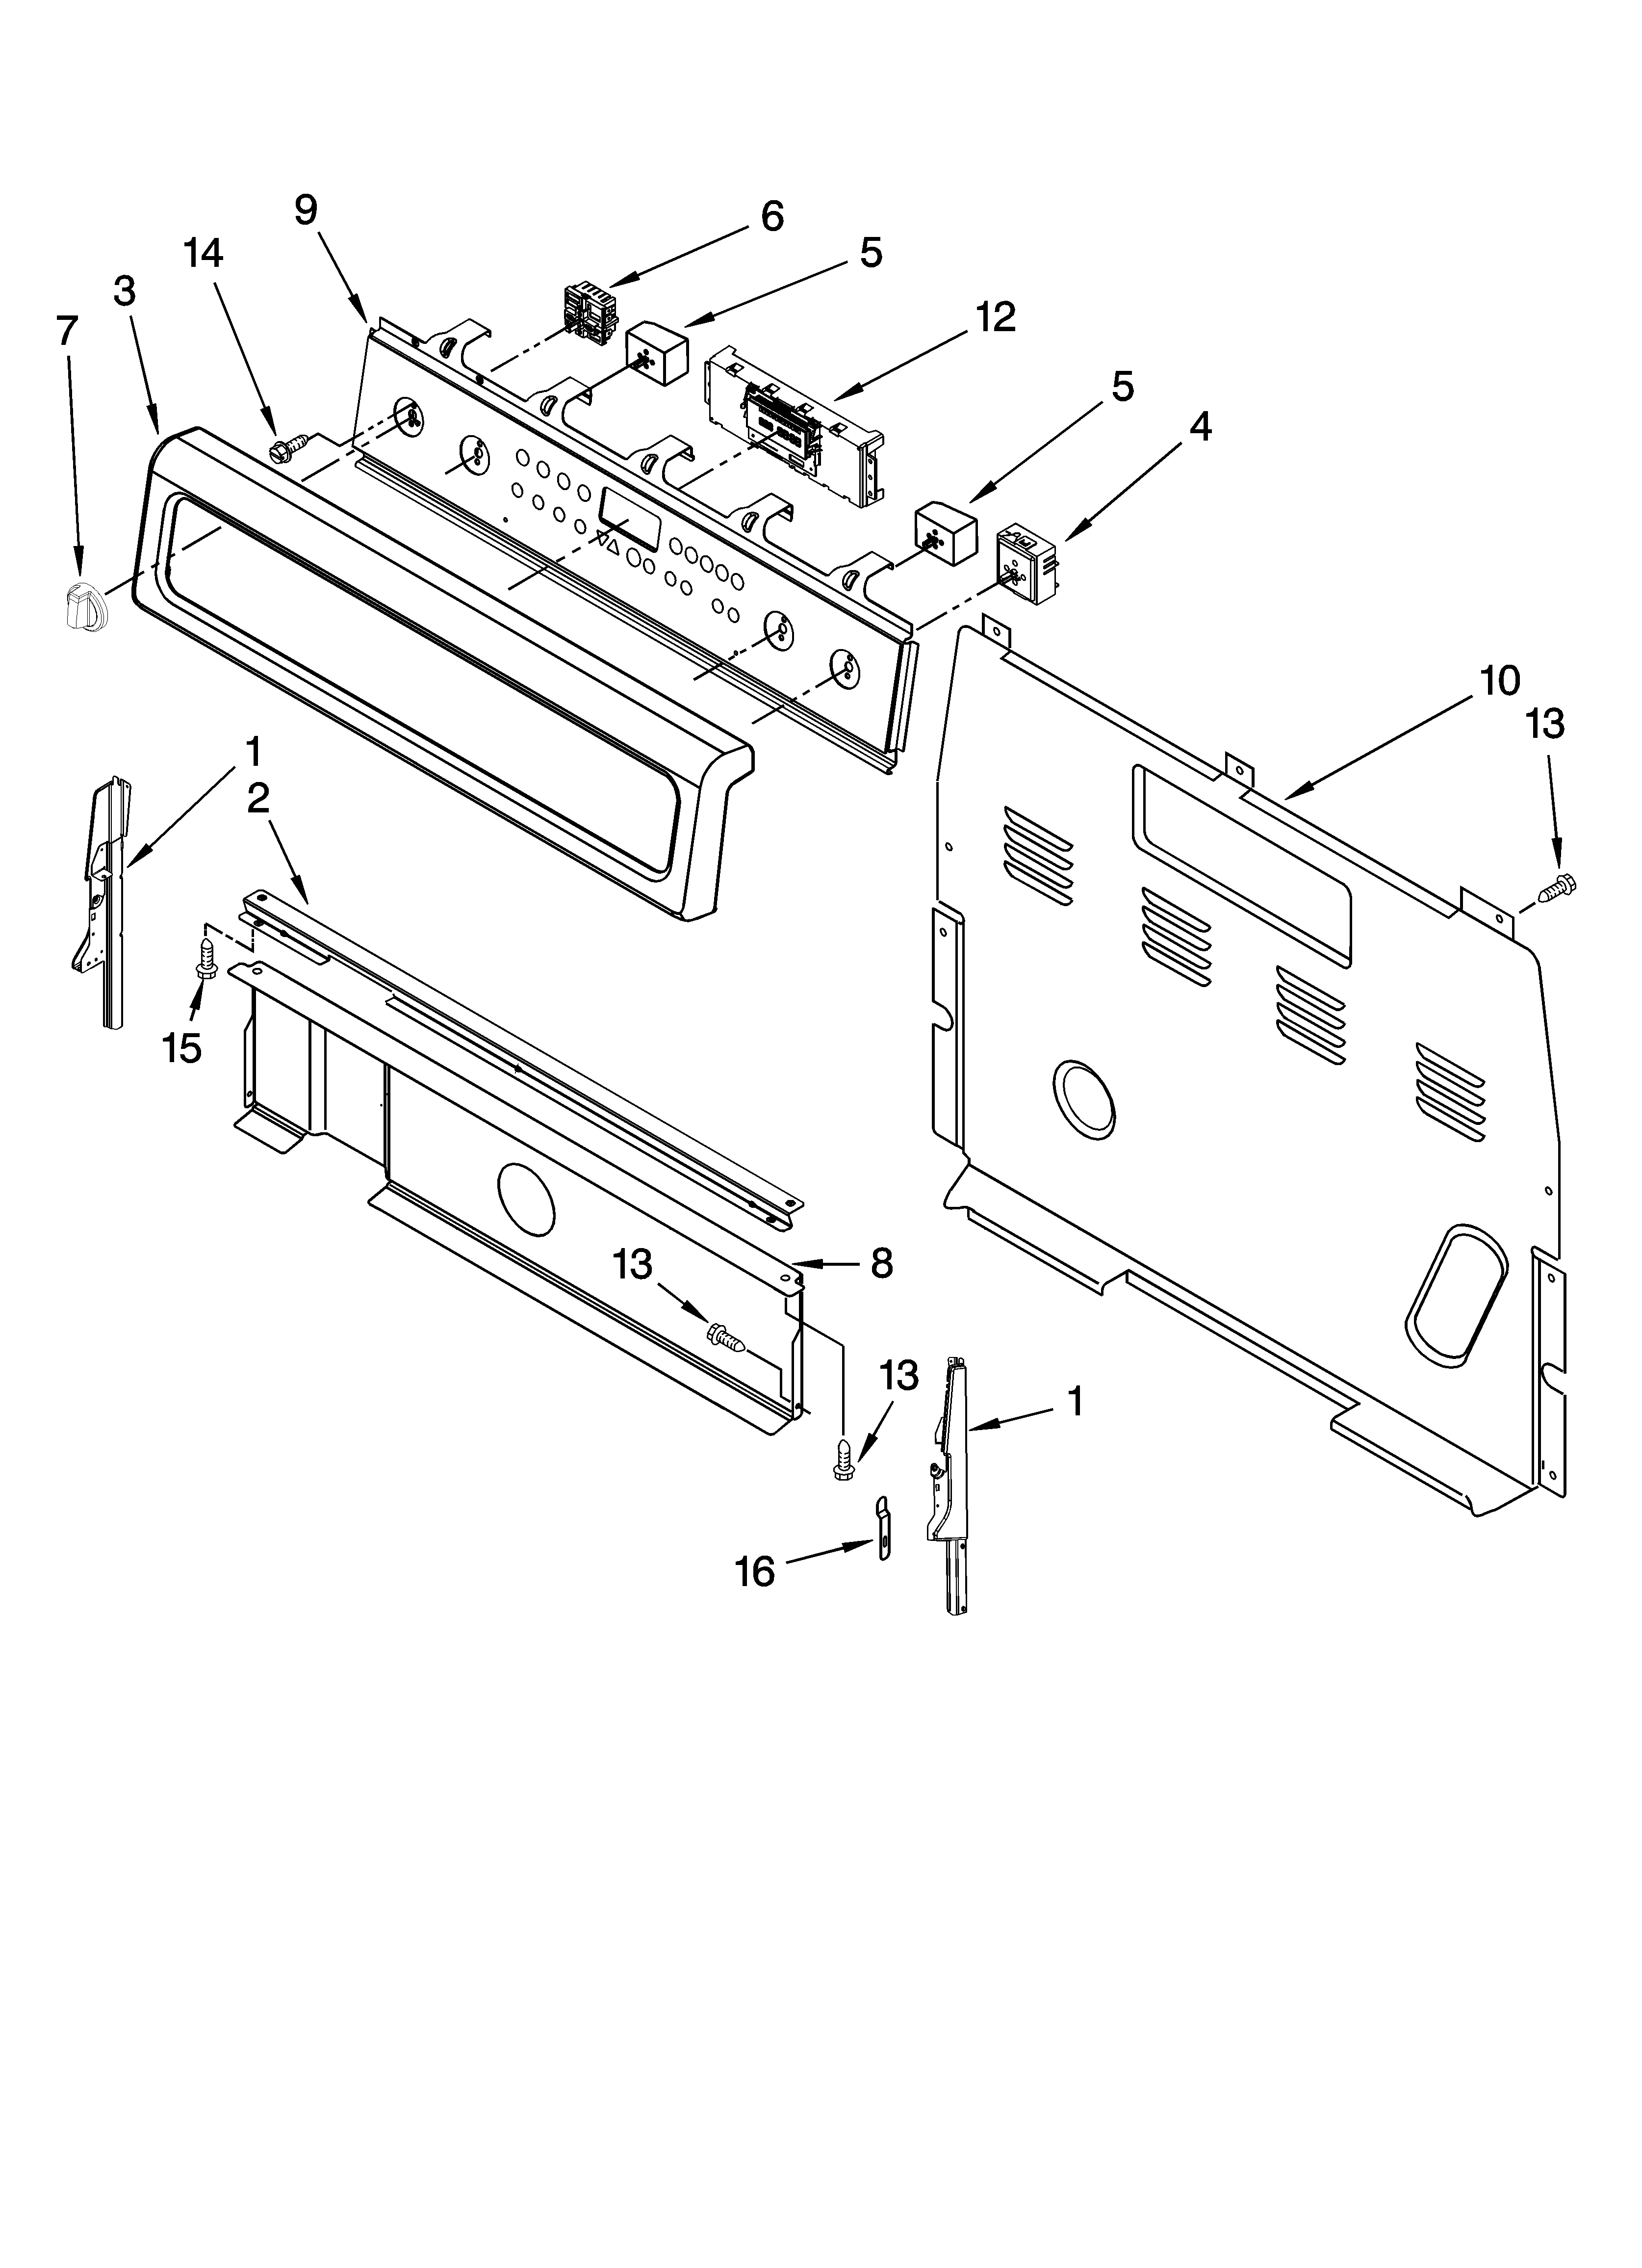 Whirlpool GFE471LVB0 control panel parts diagram